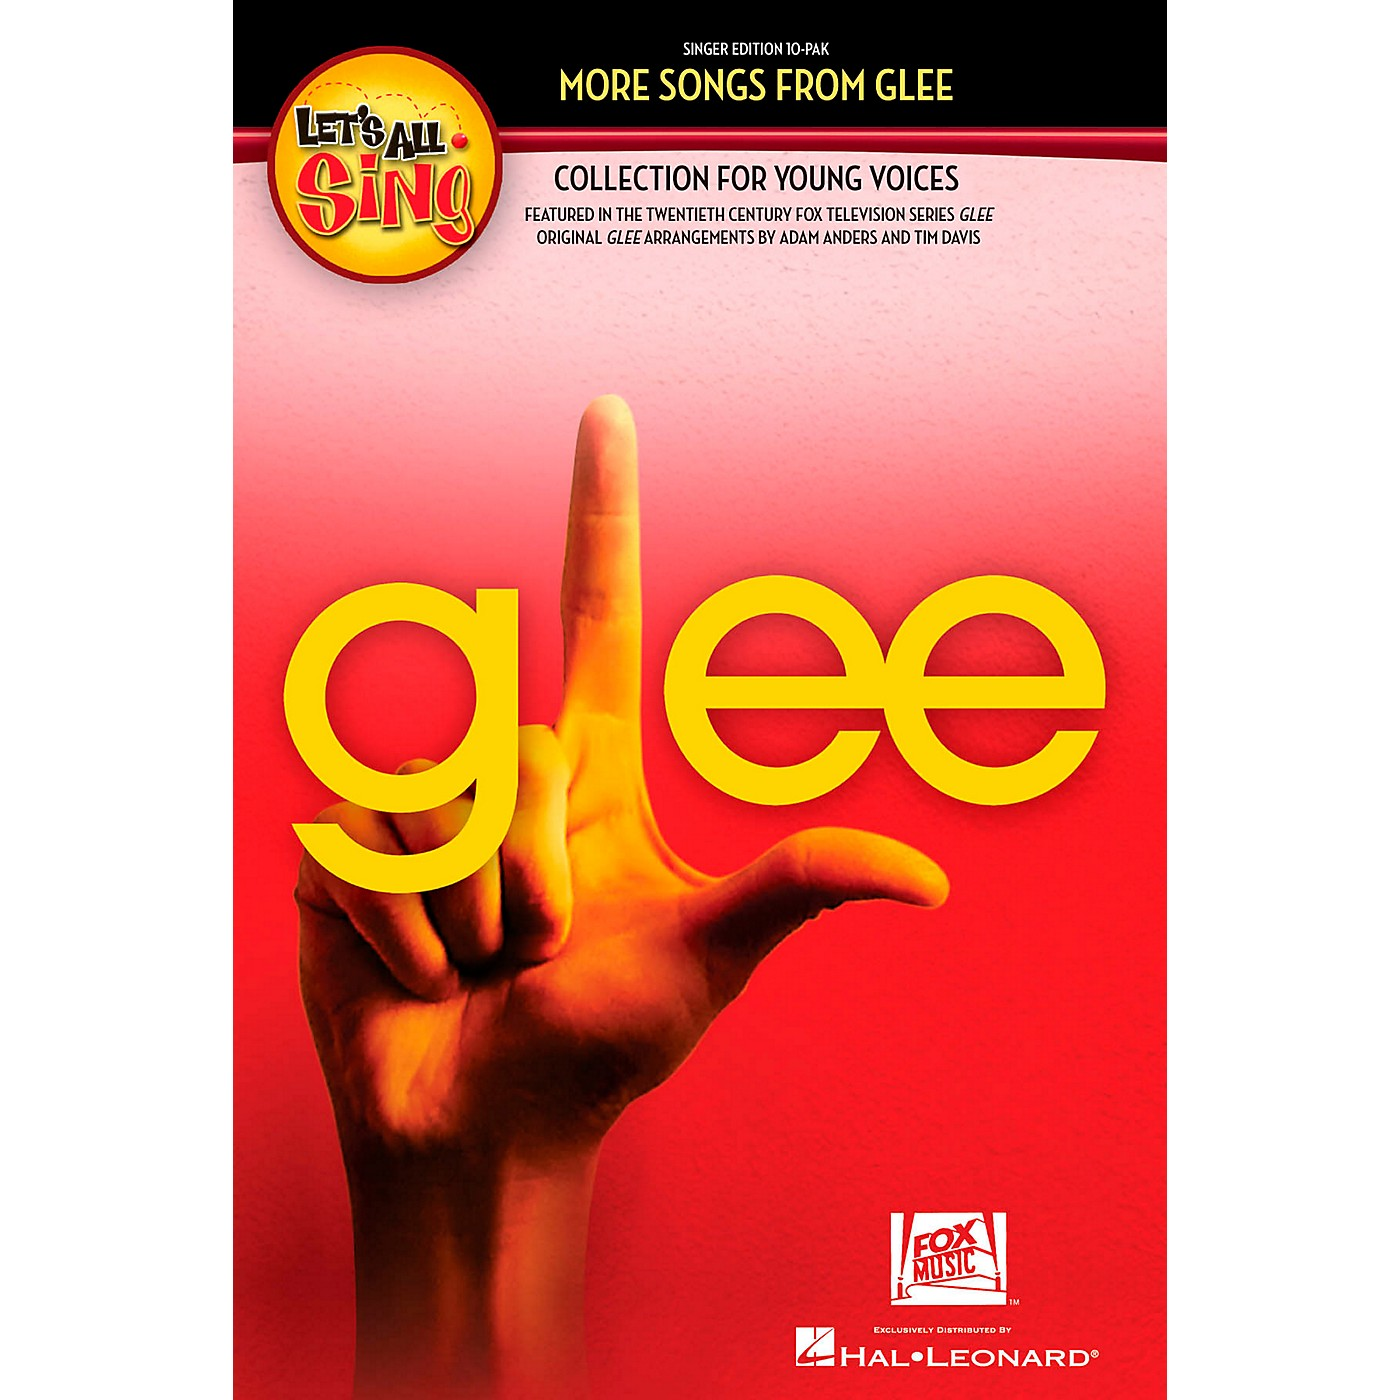 Hal Leonard Let's All Sing More Songs From Glee Collection for Young Voices thumbnail